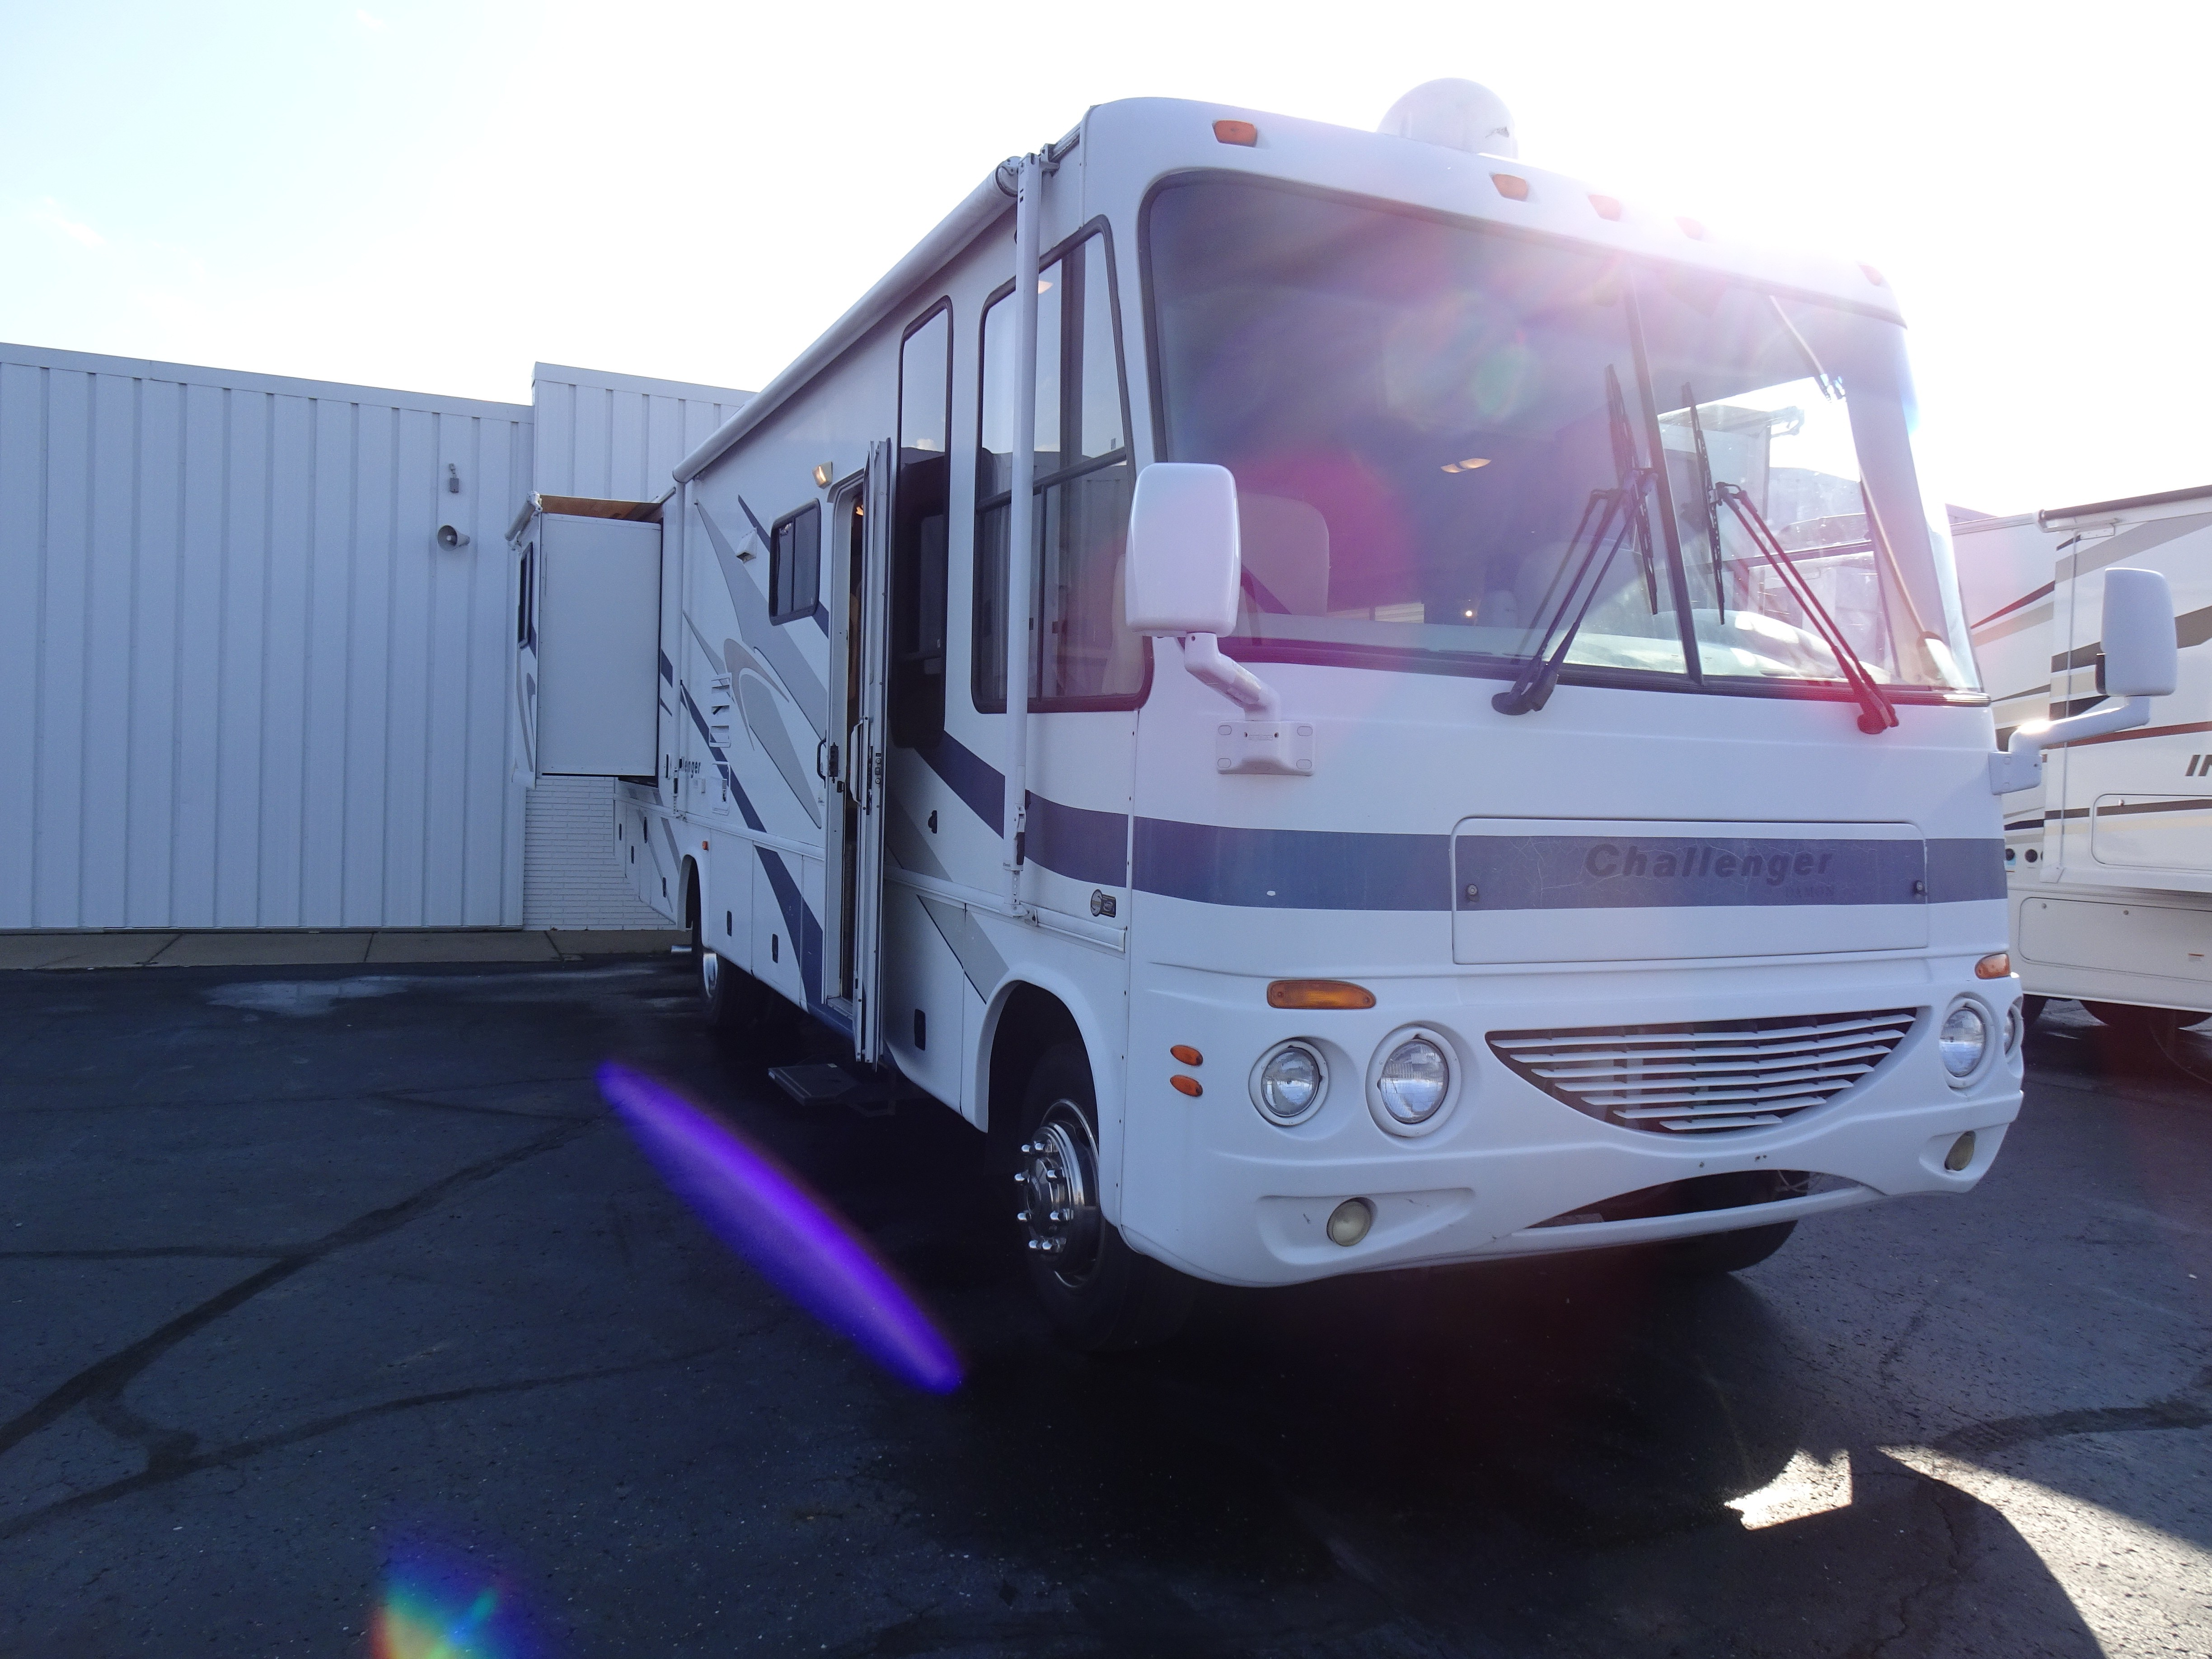 Used, 2004, Damon, CHALLENGER 327W, RV - Class A